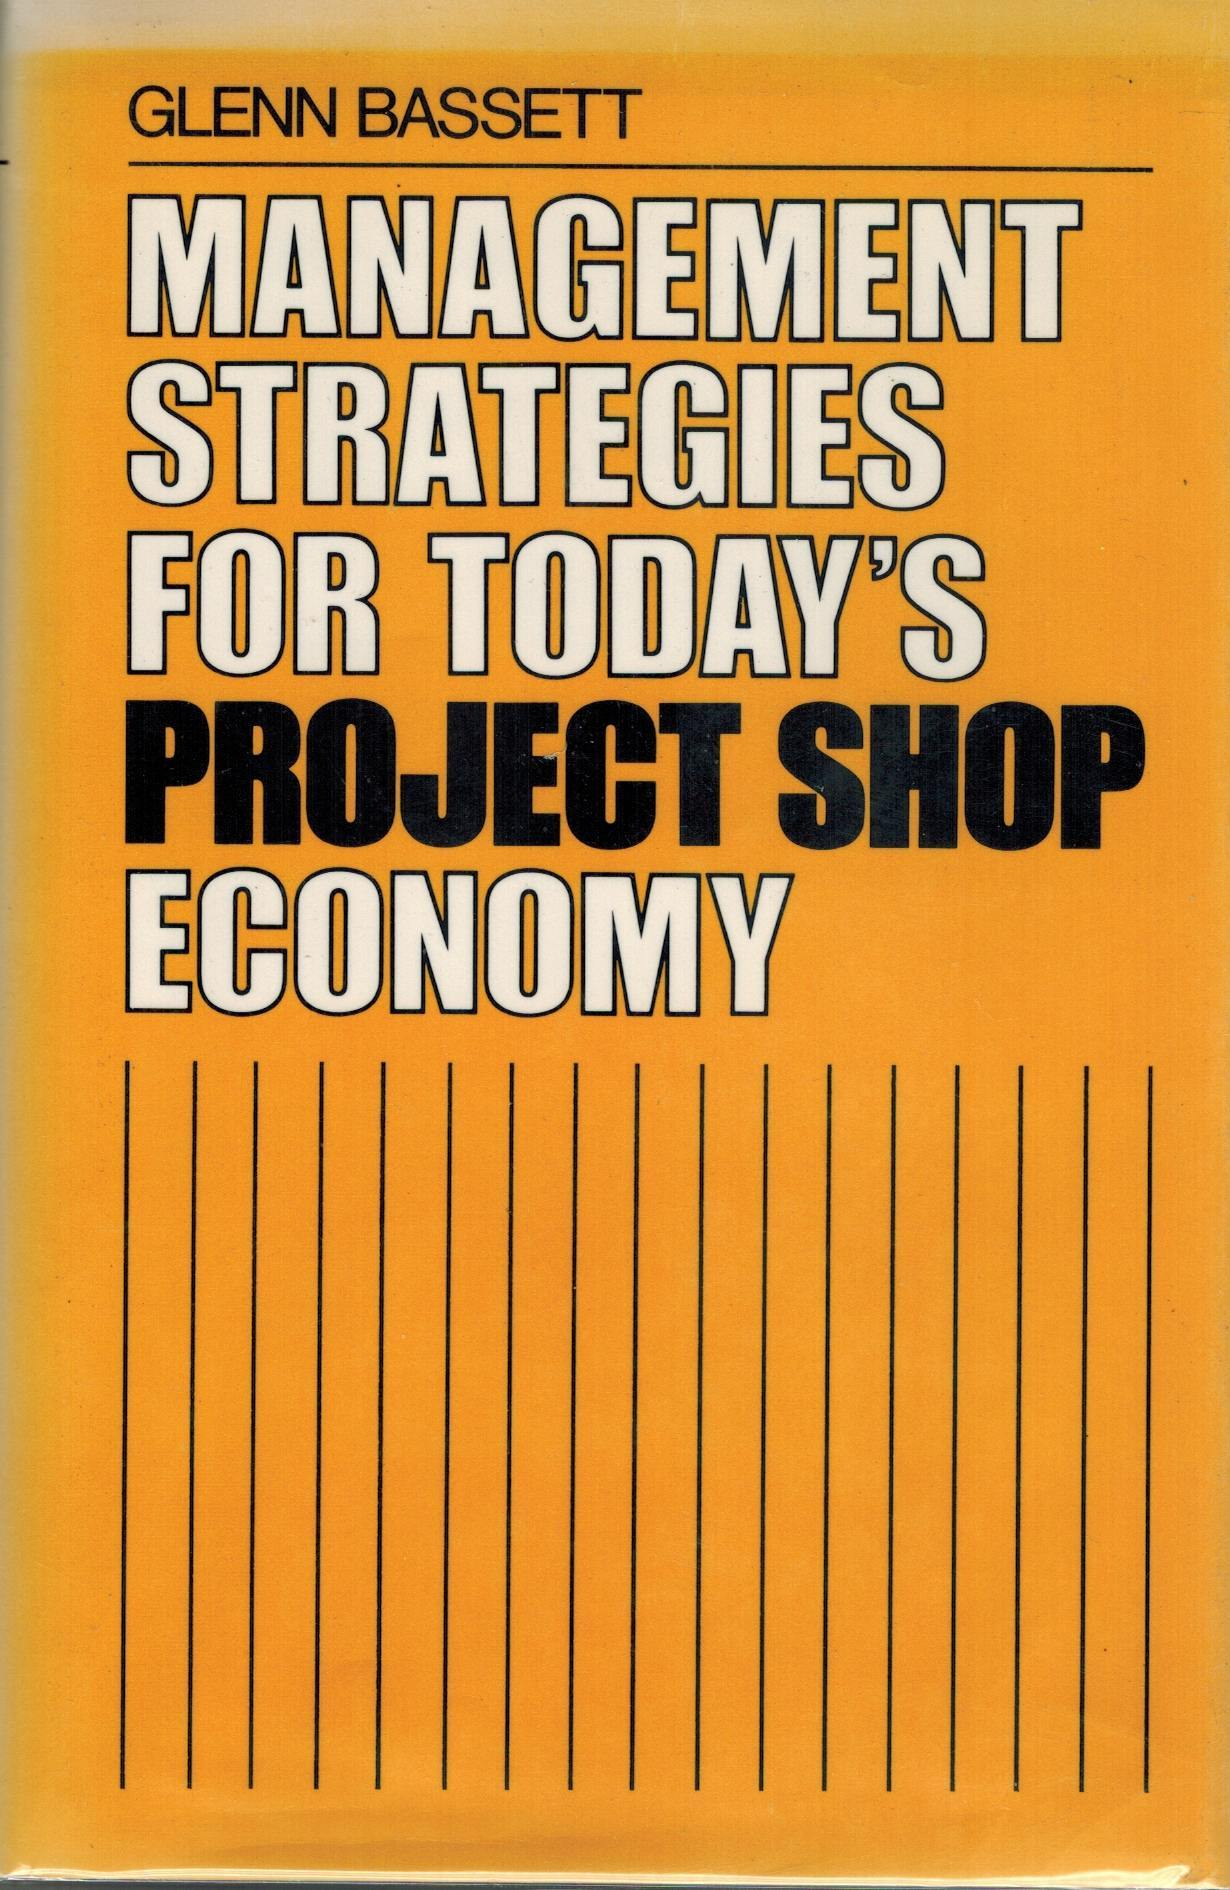 Management Strategies for Today's Project Shop Economy - books-new